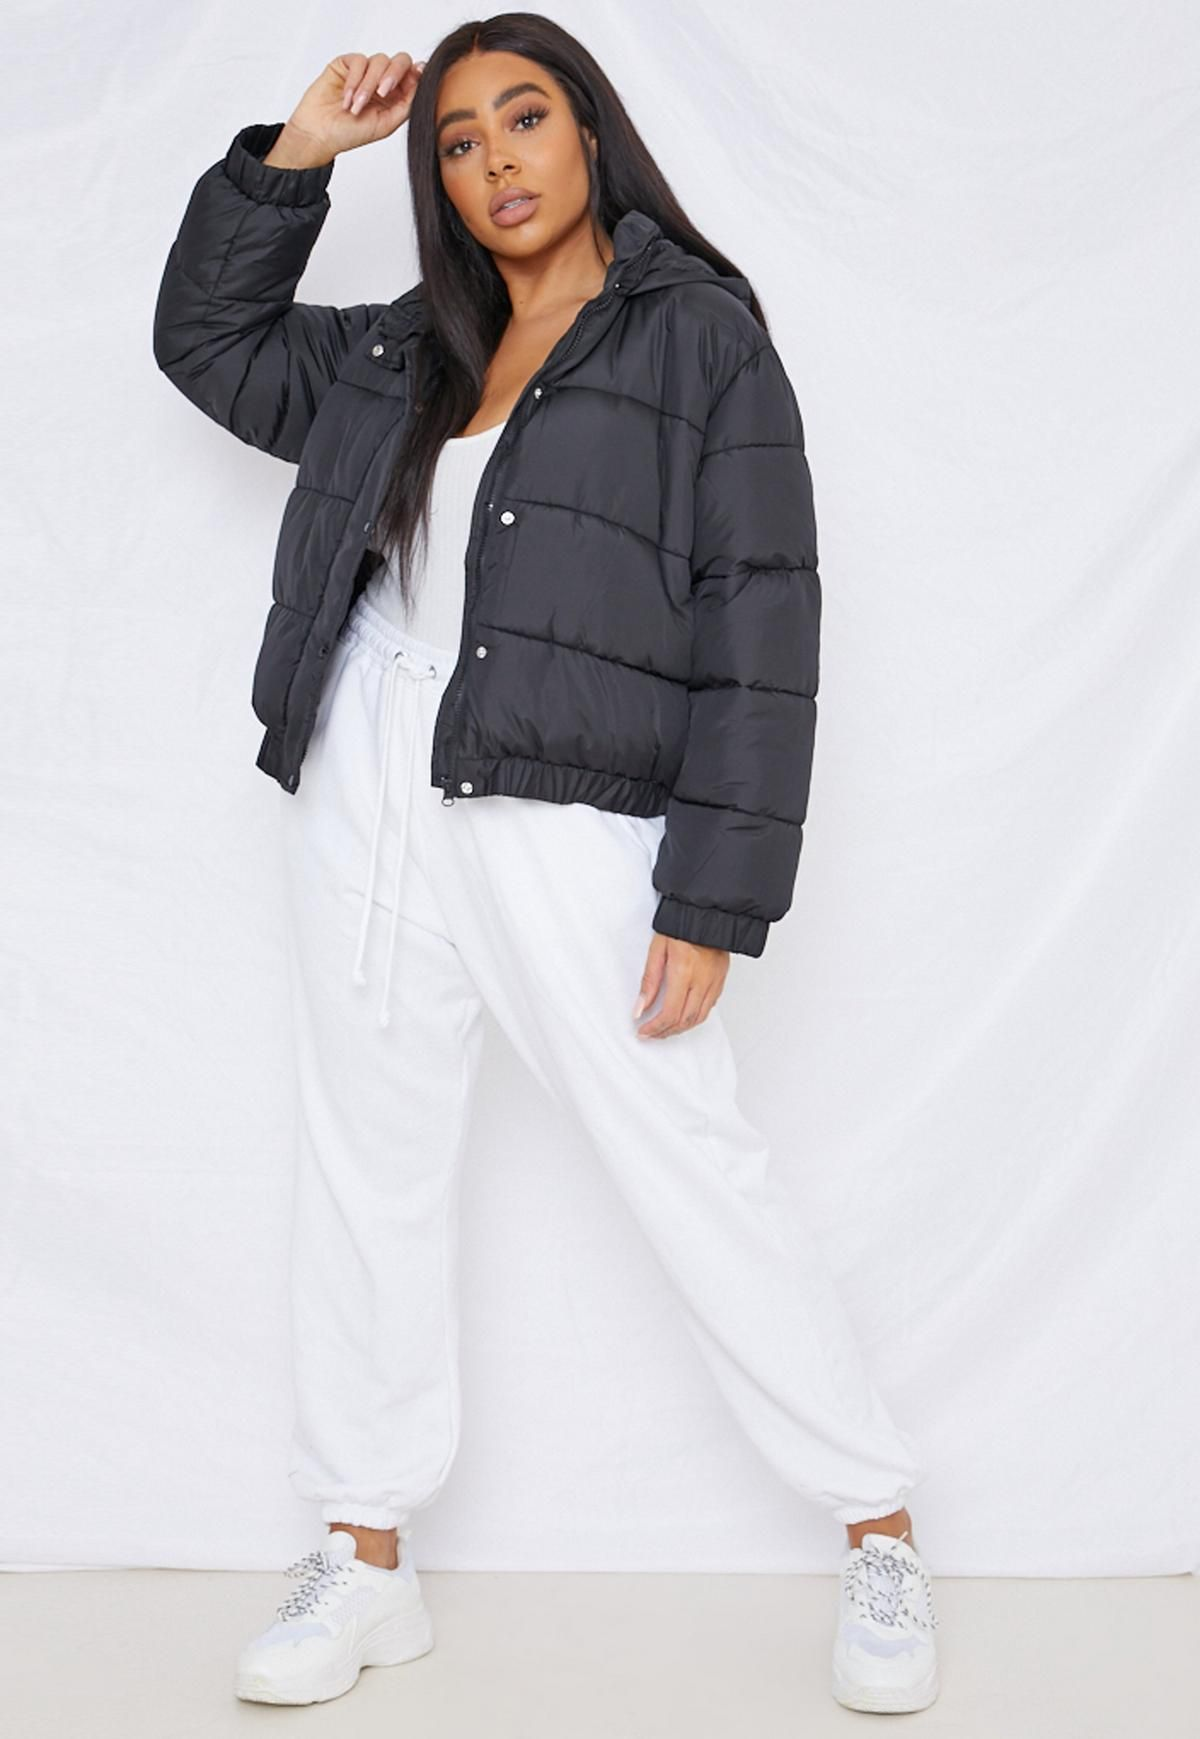 Missguided Plus Size Black Hooded Puffer Jacket In 2021 Puffer Jacket Women Black Puffer Jacket Puffer Jacket Outfit [ 1739 x 1200 Pixel ]